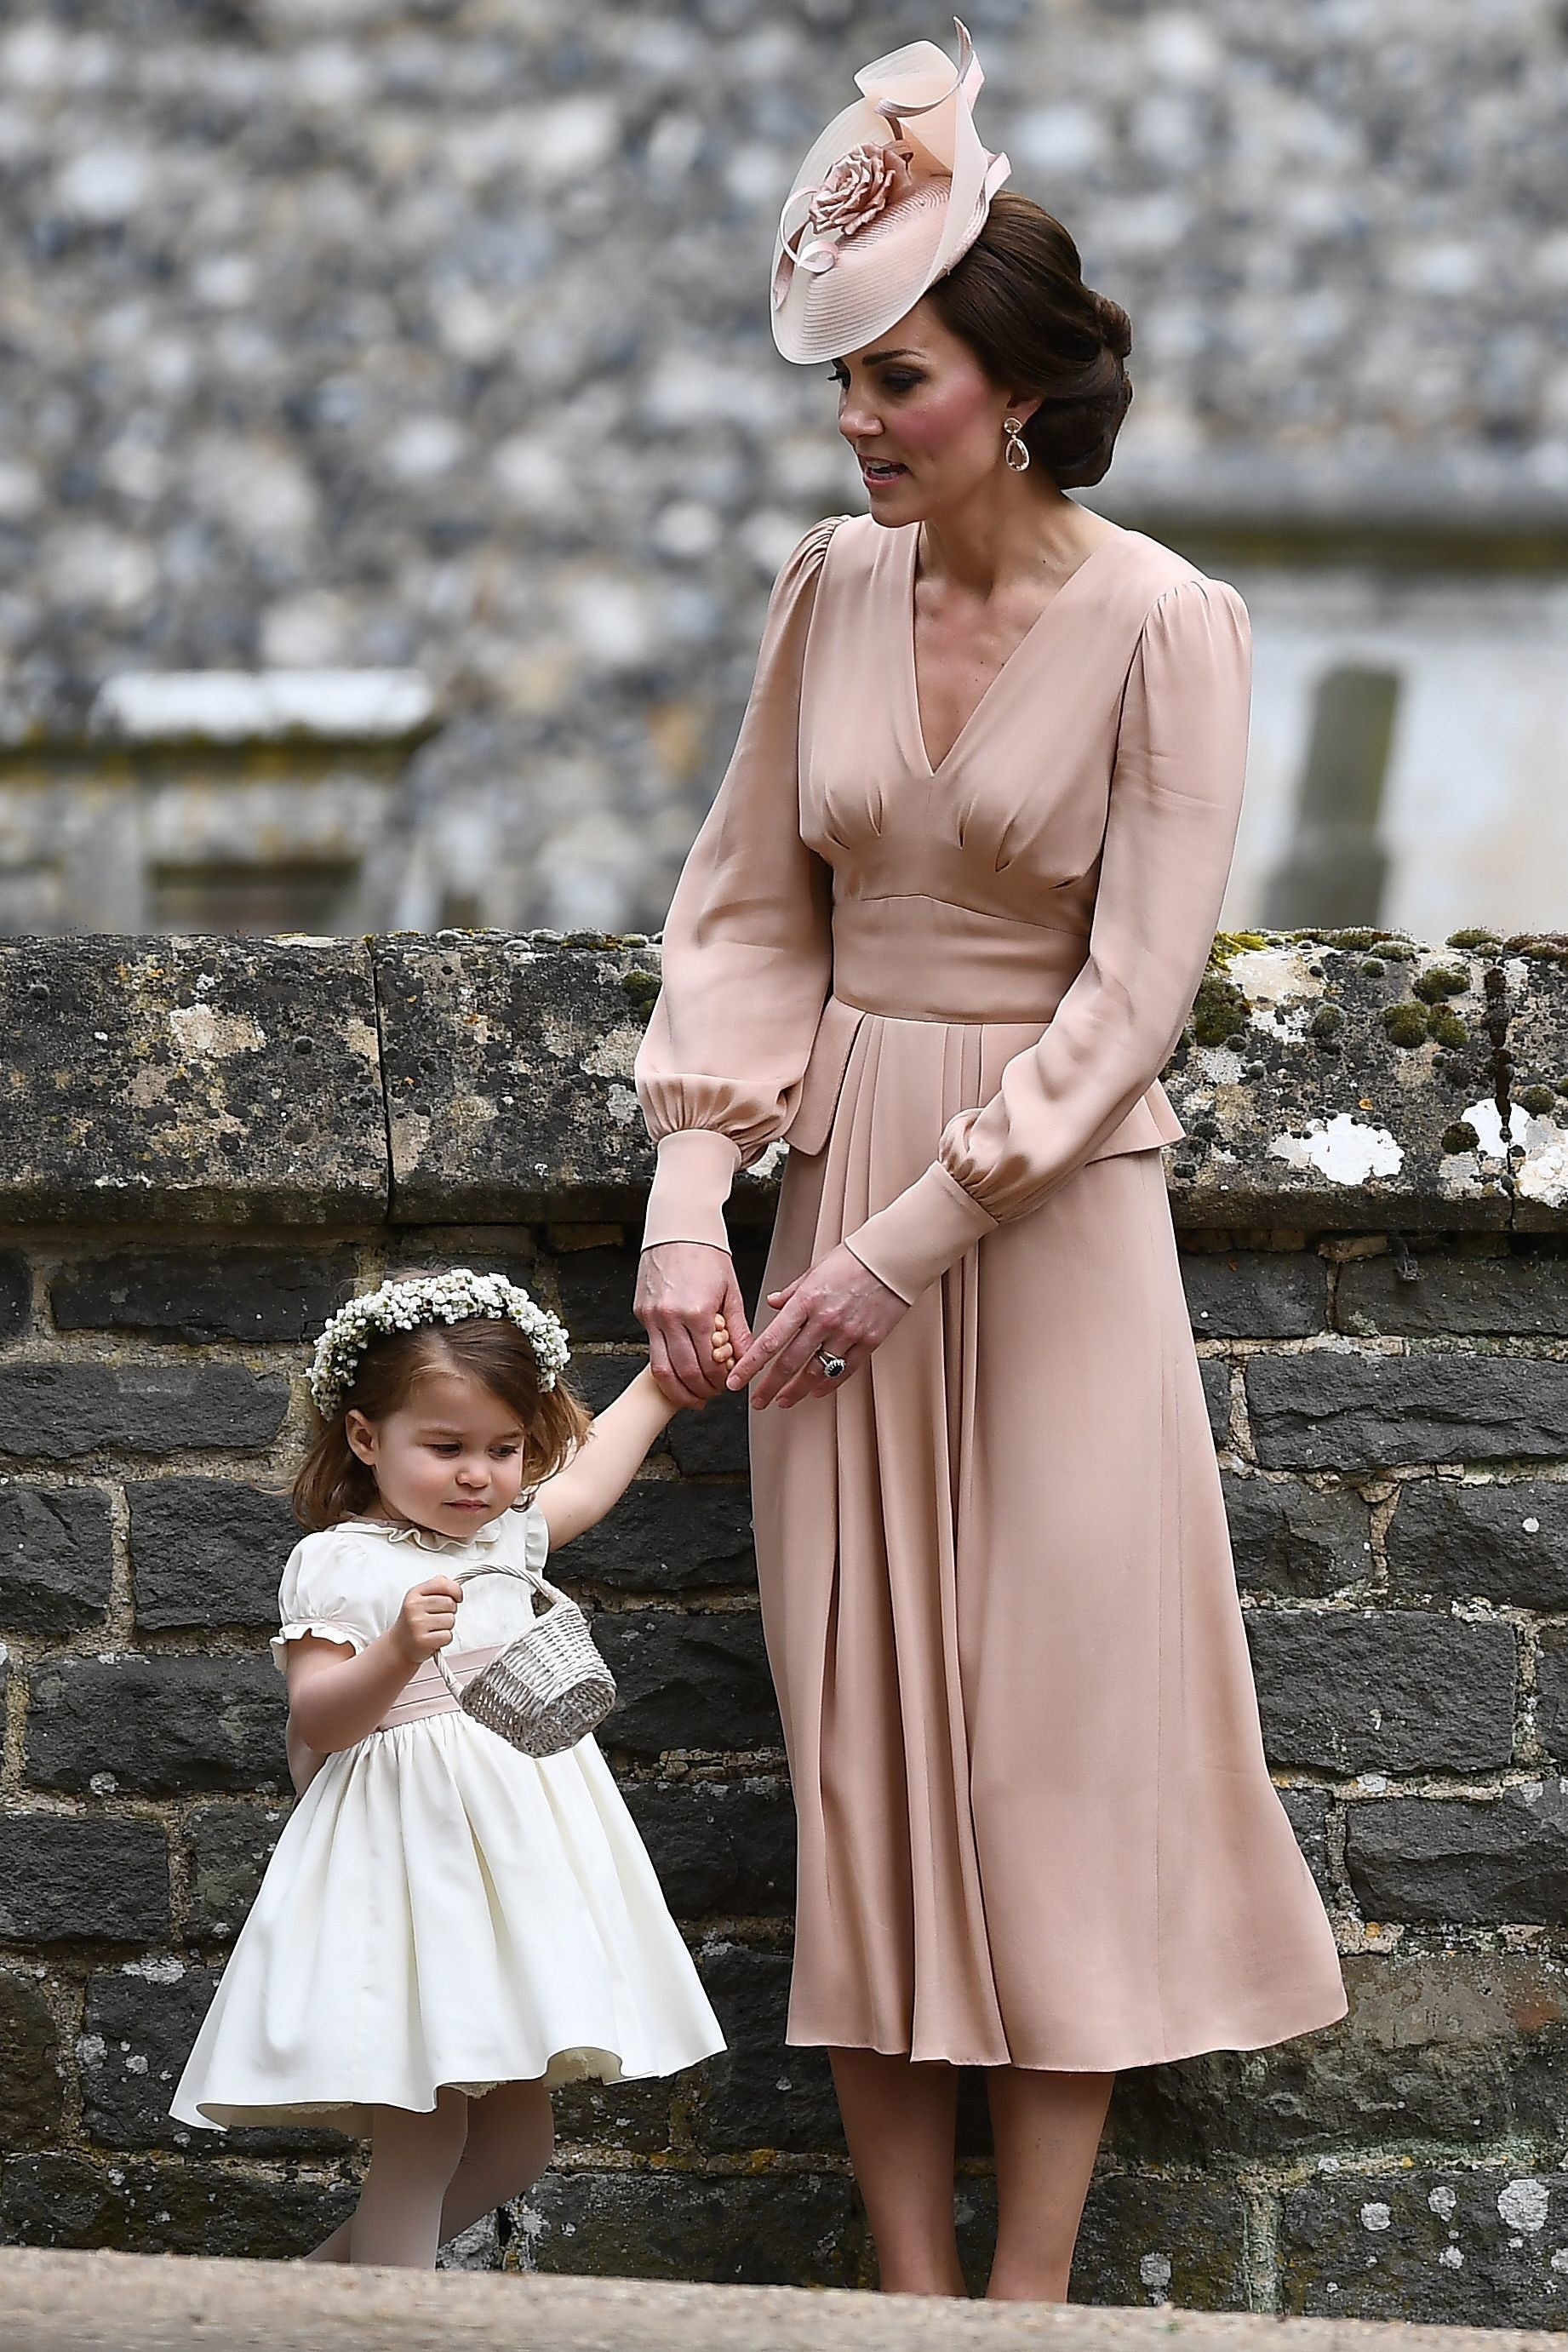 The Duchess Of Cambridge Stuns In An Alexander McQueen Dress At Pippa Middleton's